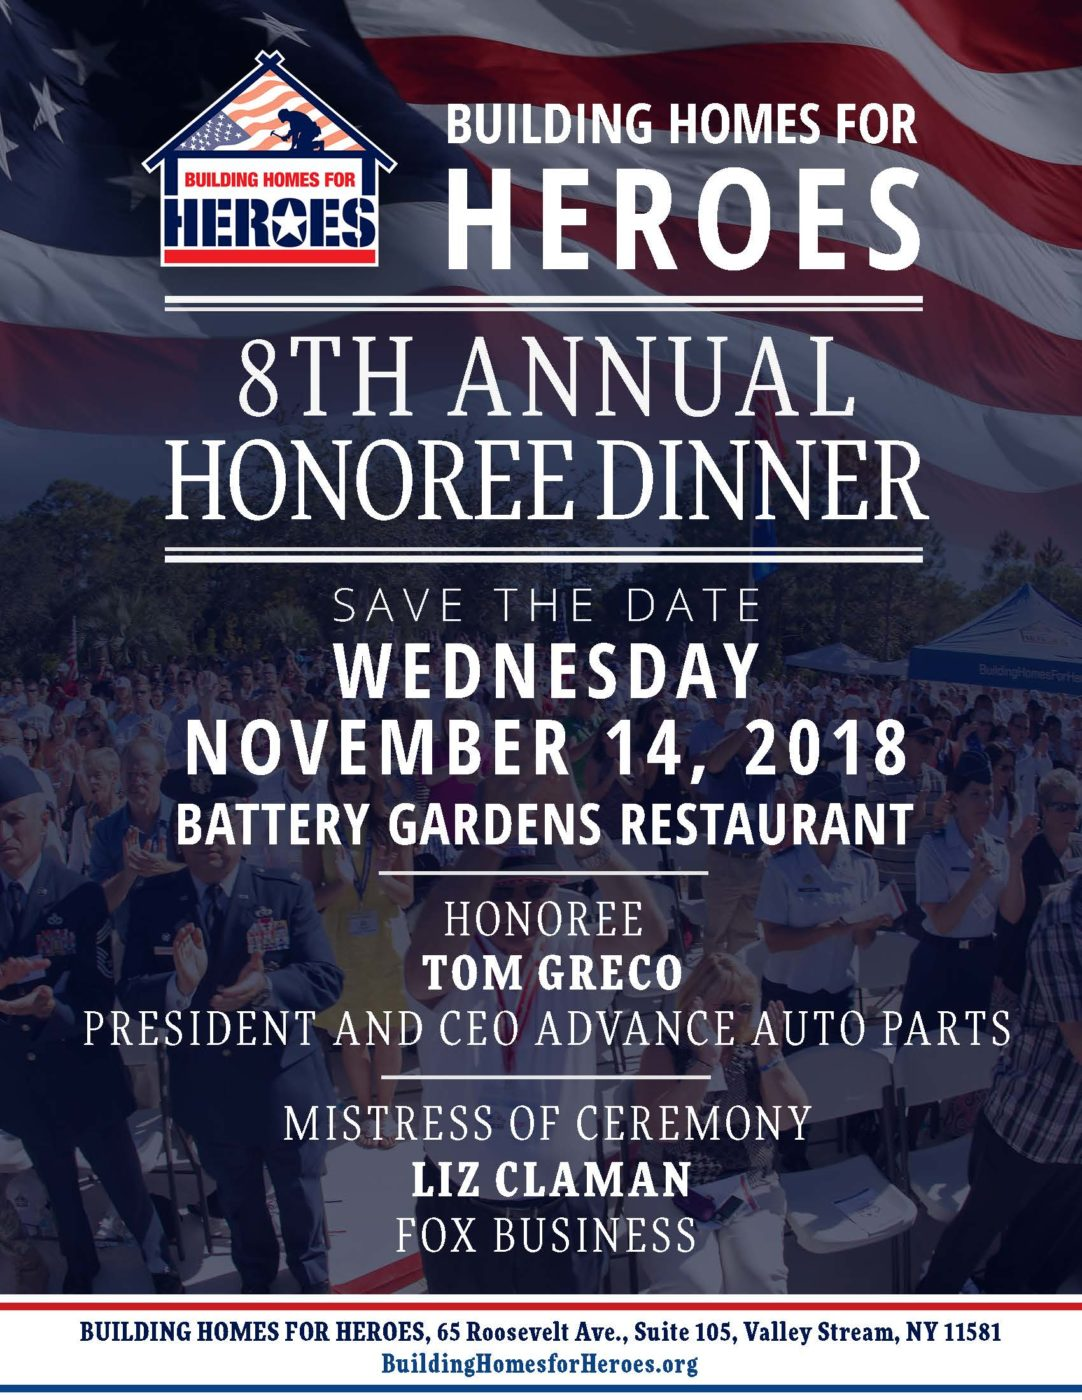 8th Annual Honoree Dinner Save the Date! @ Battery Gardens